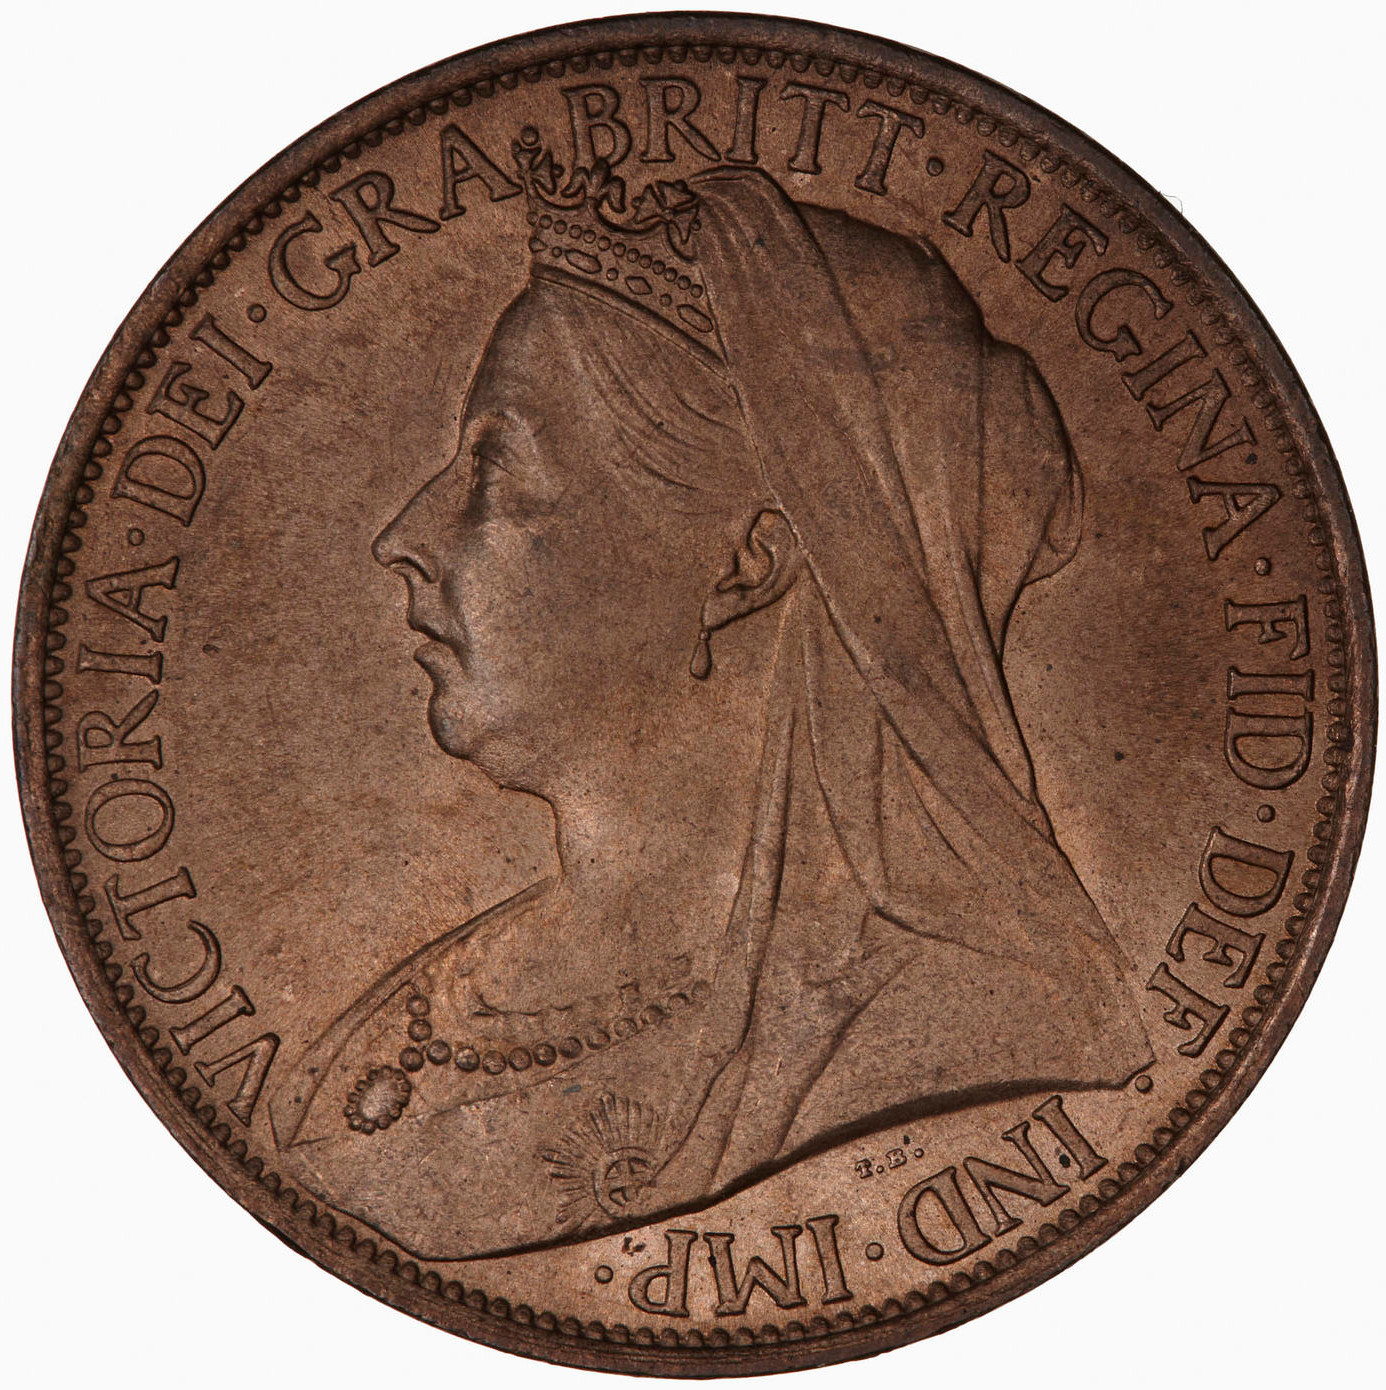 Penny (Pre-decimal): Photo Coin - Penny, Queen Victoria, Great Britain, 1898